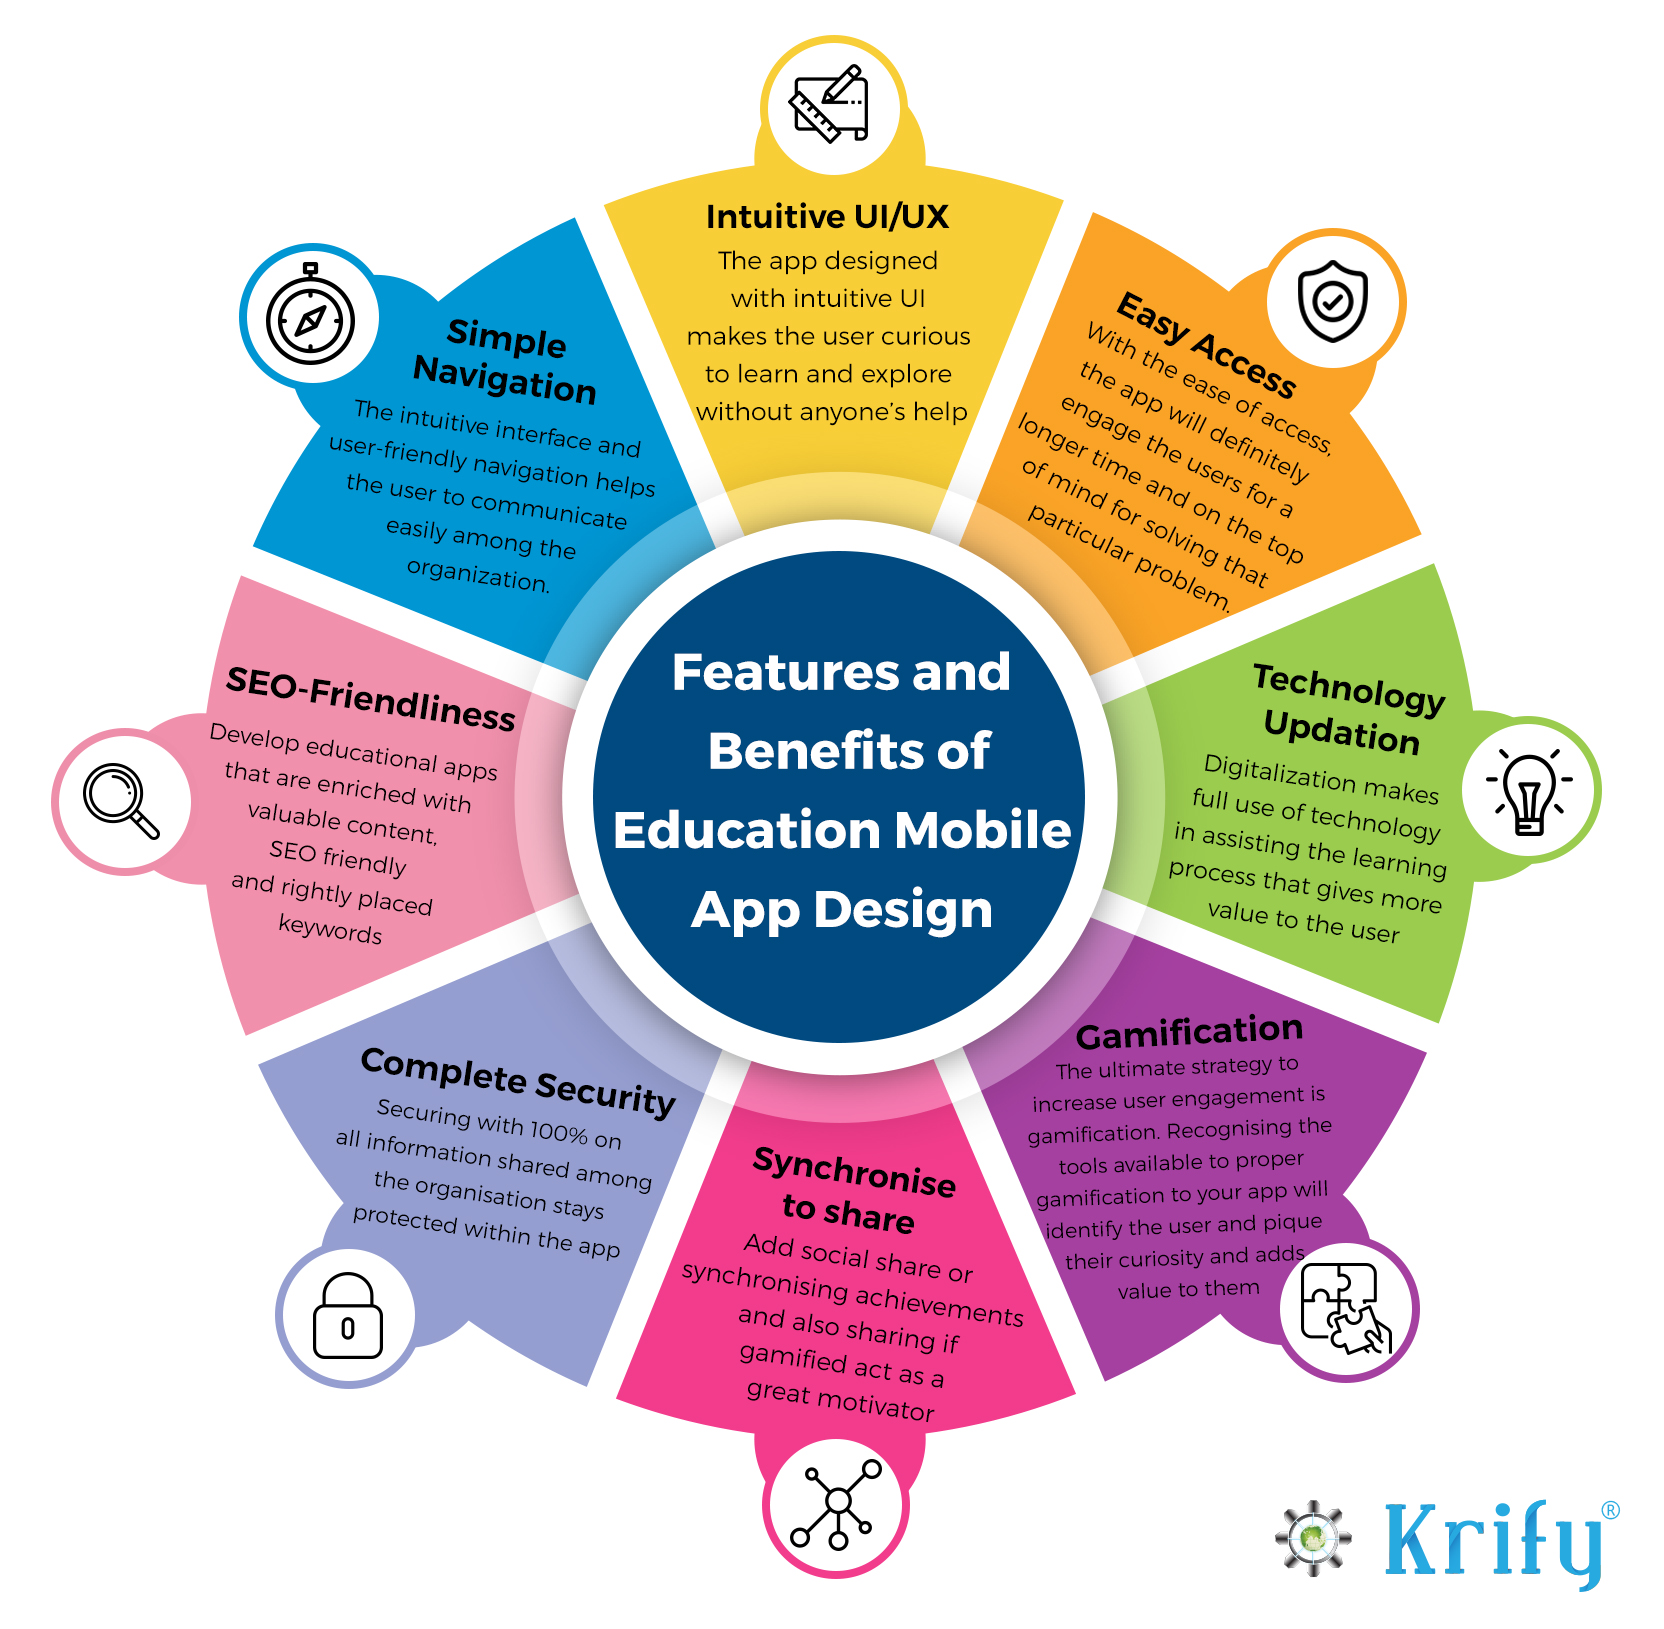 Benefits and features of basic educational app